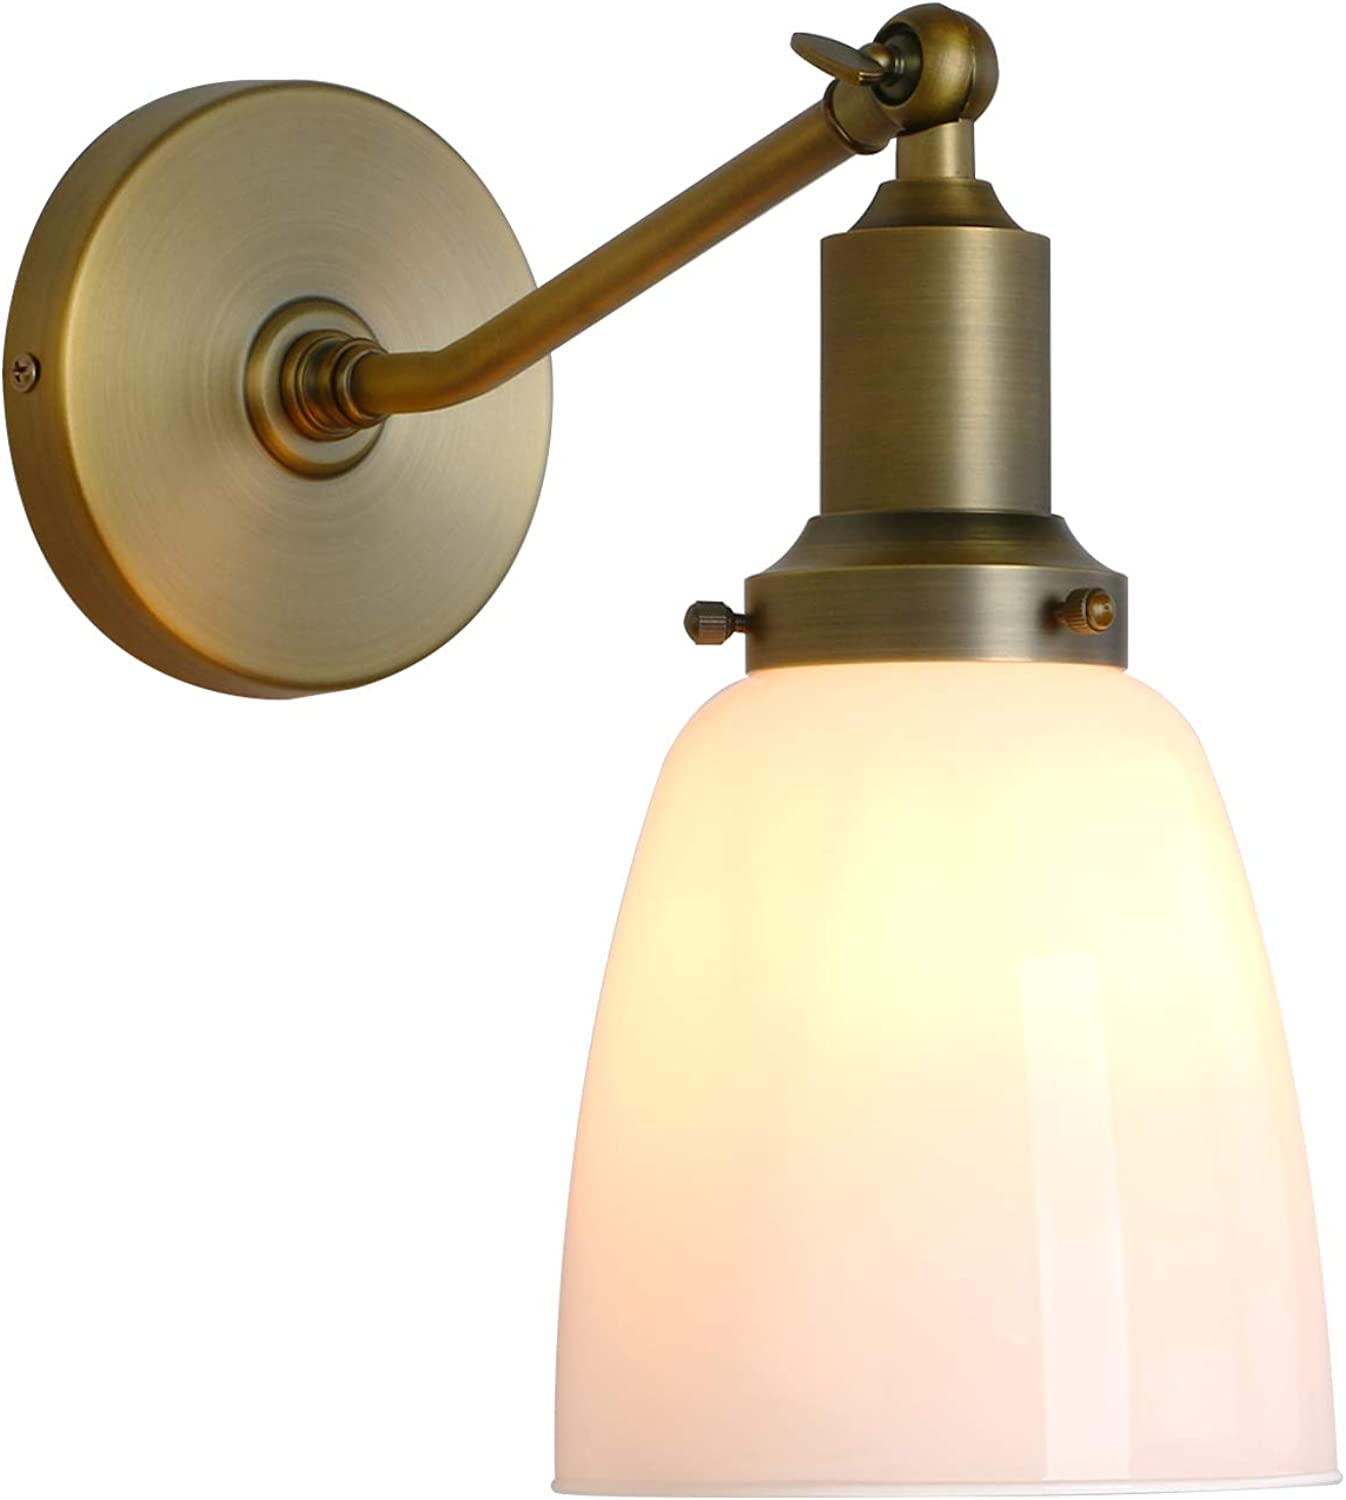 Permo Industrial Vintage Slope Pole Wall Mount Single Sconce with 5.5  Oval Dome Milk White Glass Shade Wall Sconce Light Lamp Fixture (Antique)